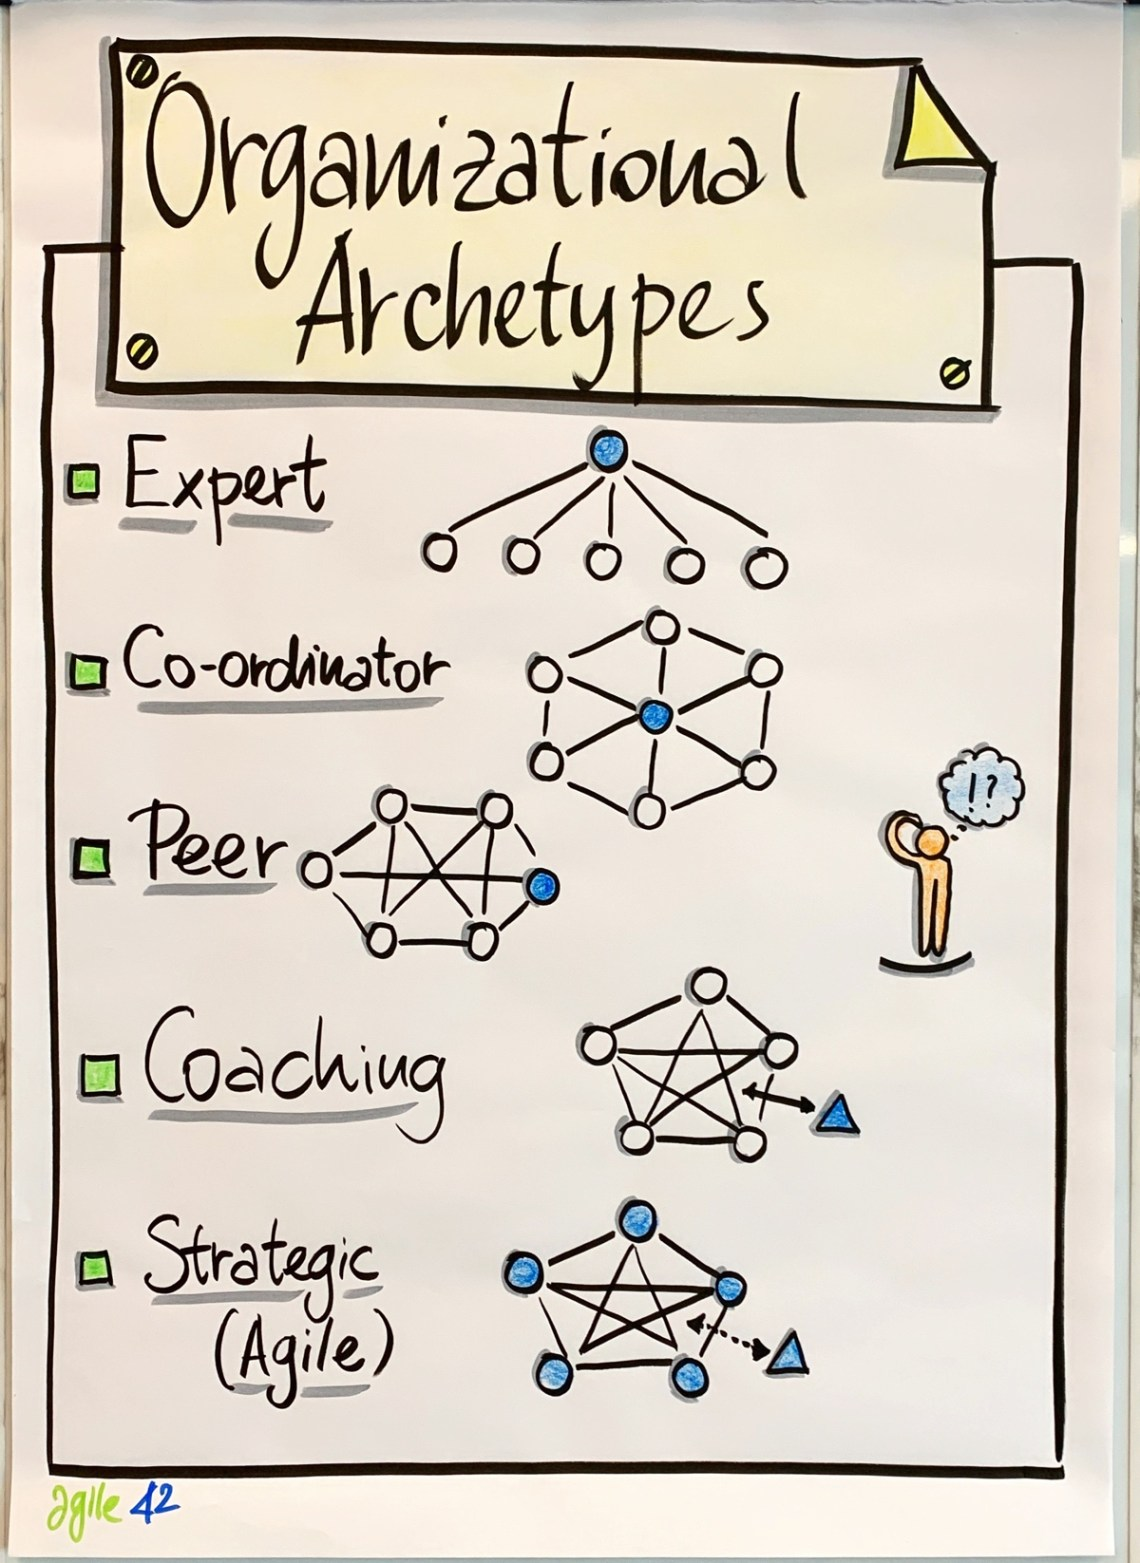 Drawing of Organizational Archetypes